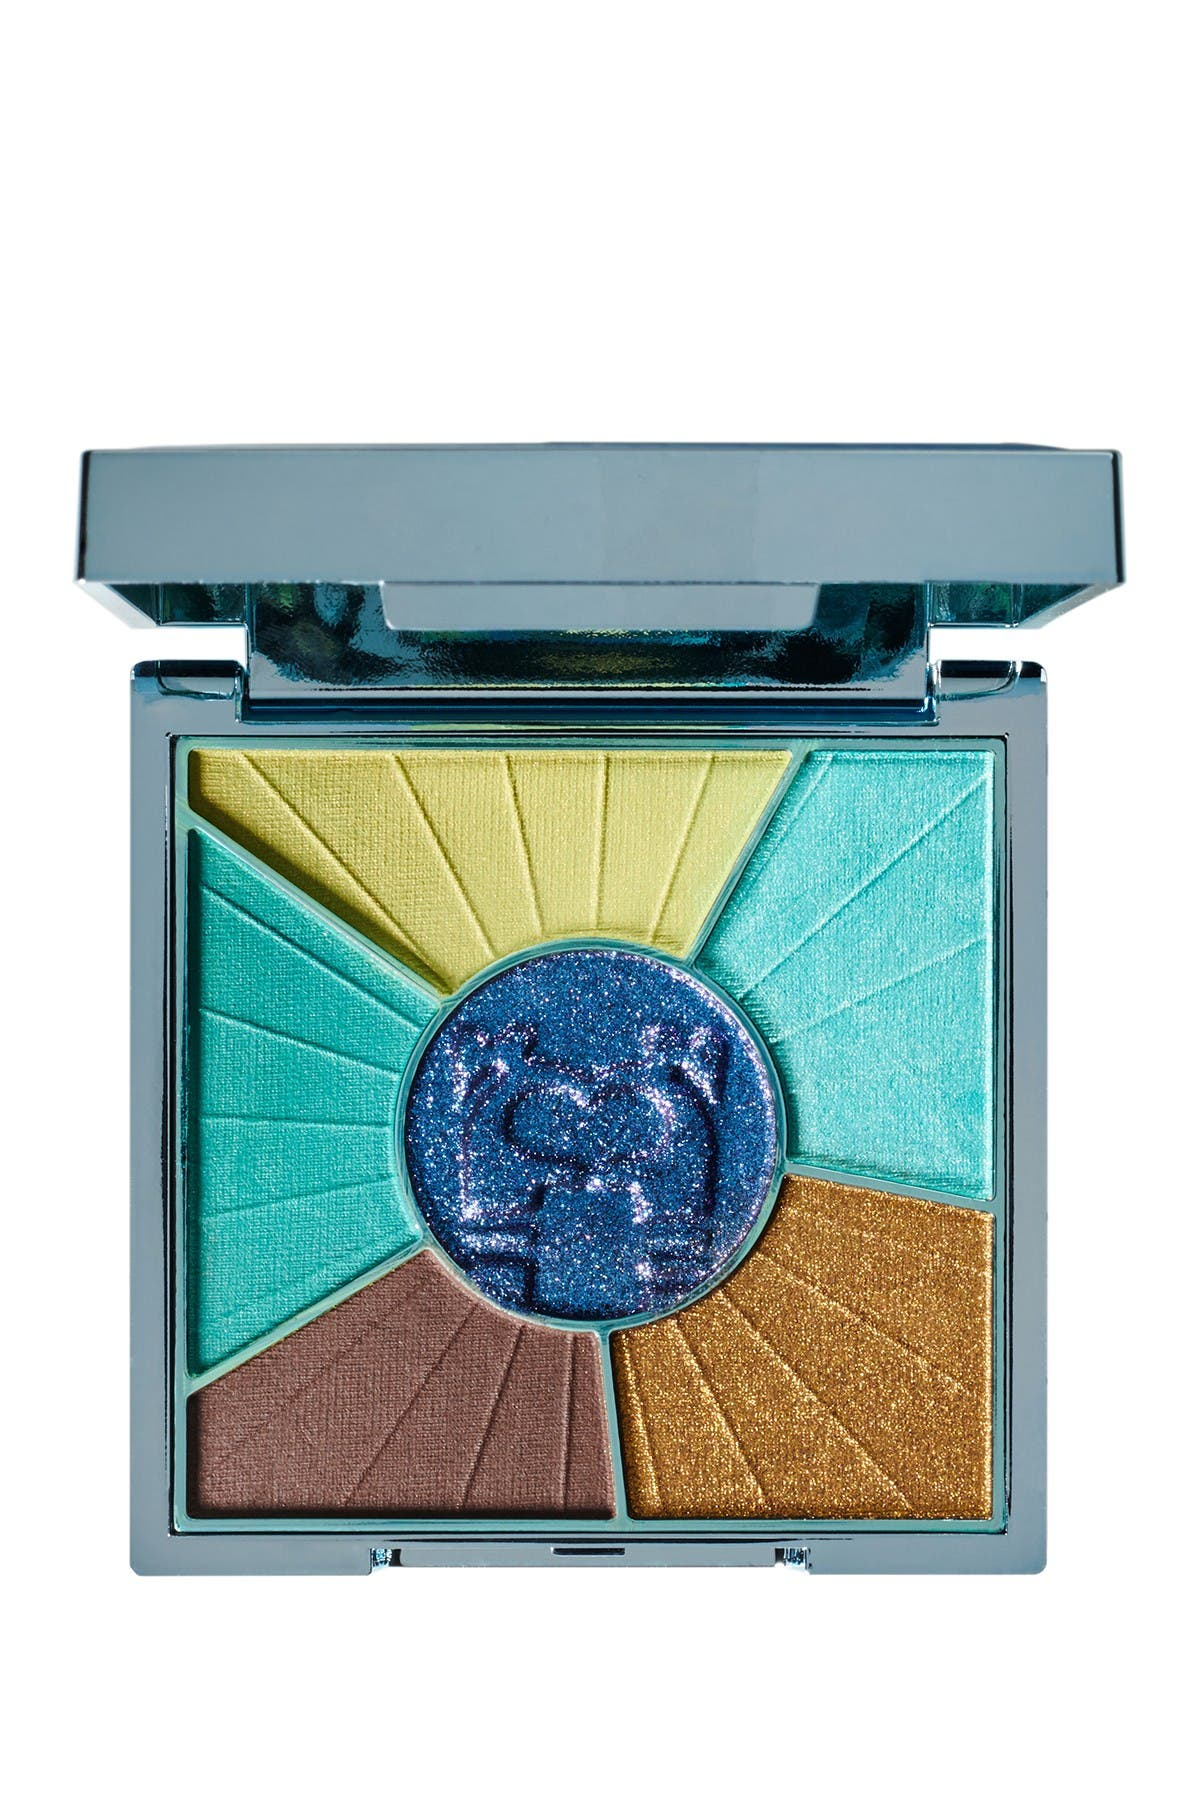 Image of PUR Cosmetics x TROLLS WORLD TOUR: Travel-Sized Pressed Pigments Palette - Techno